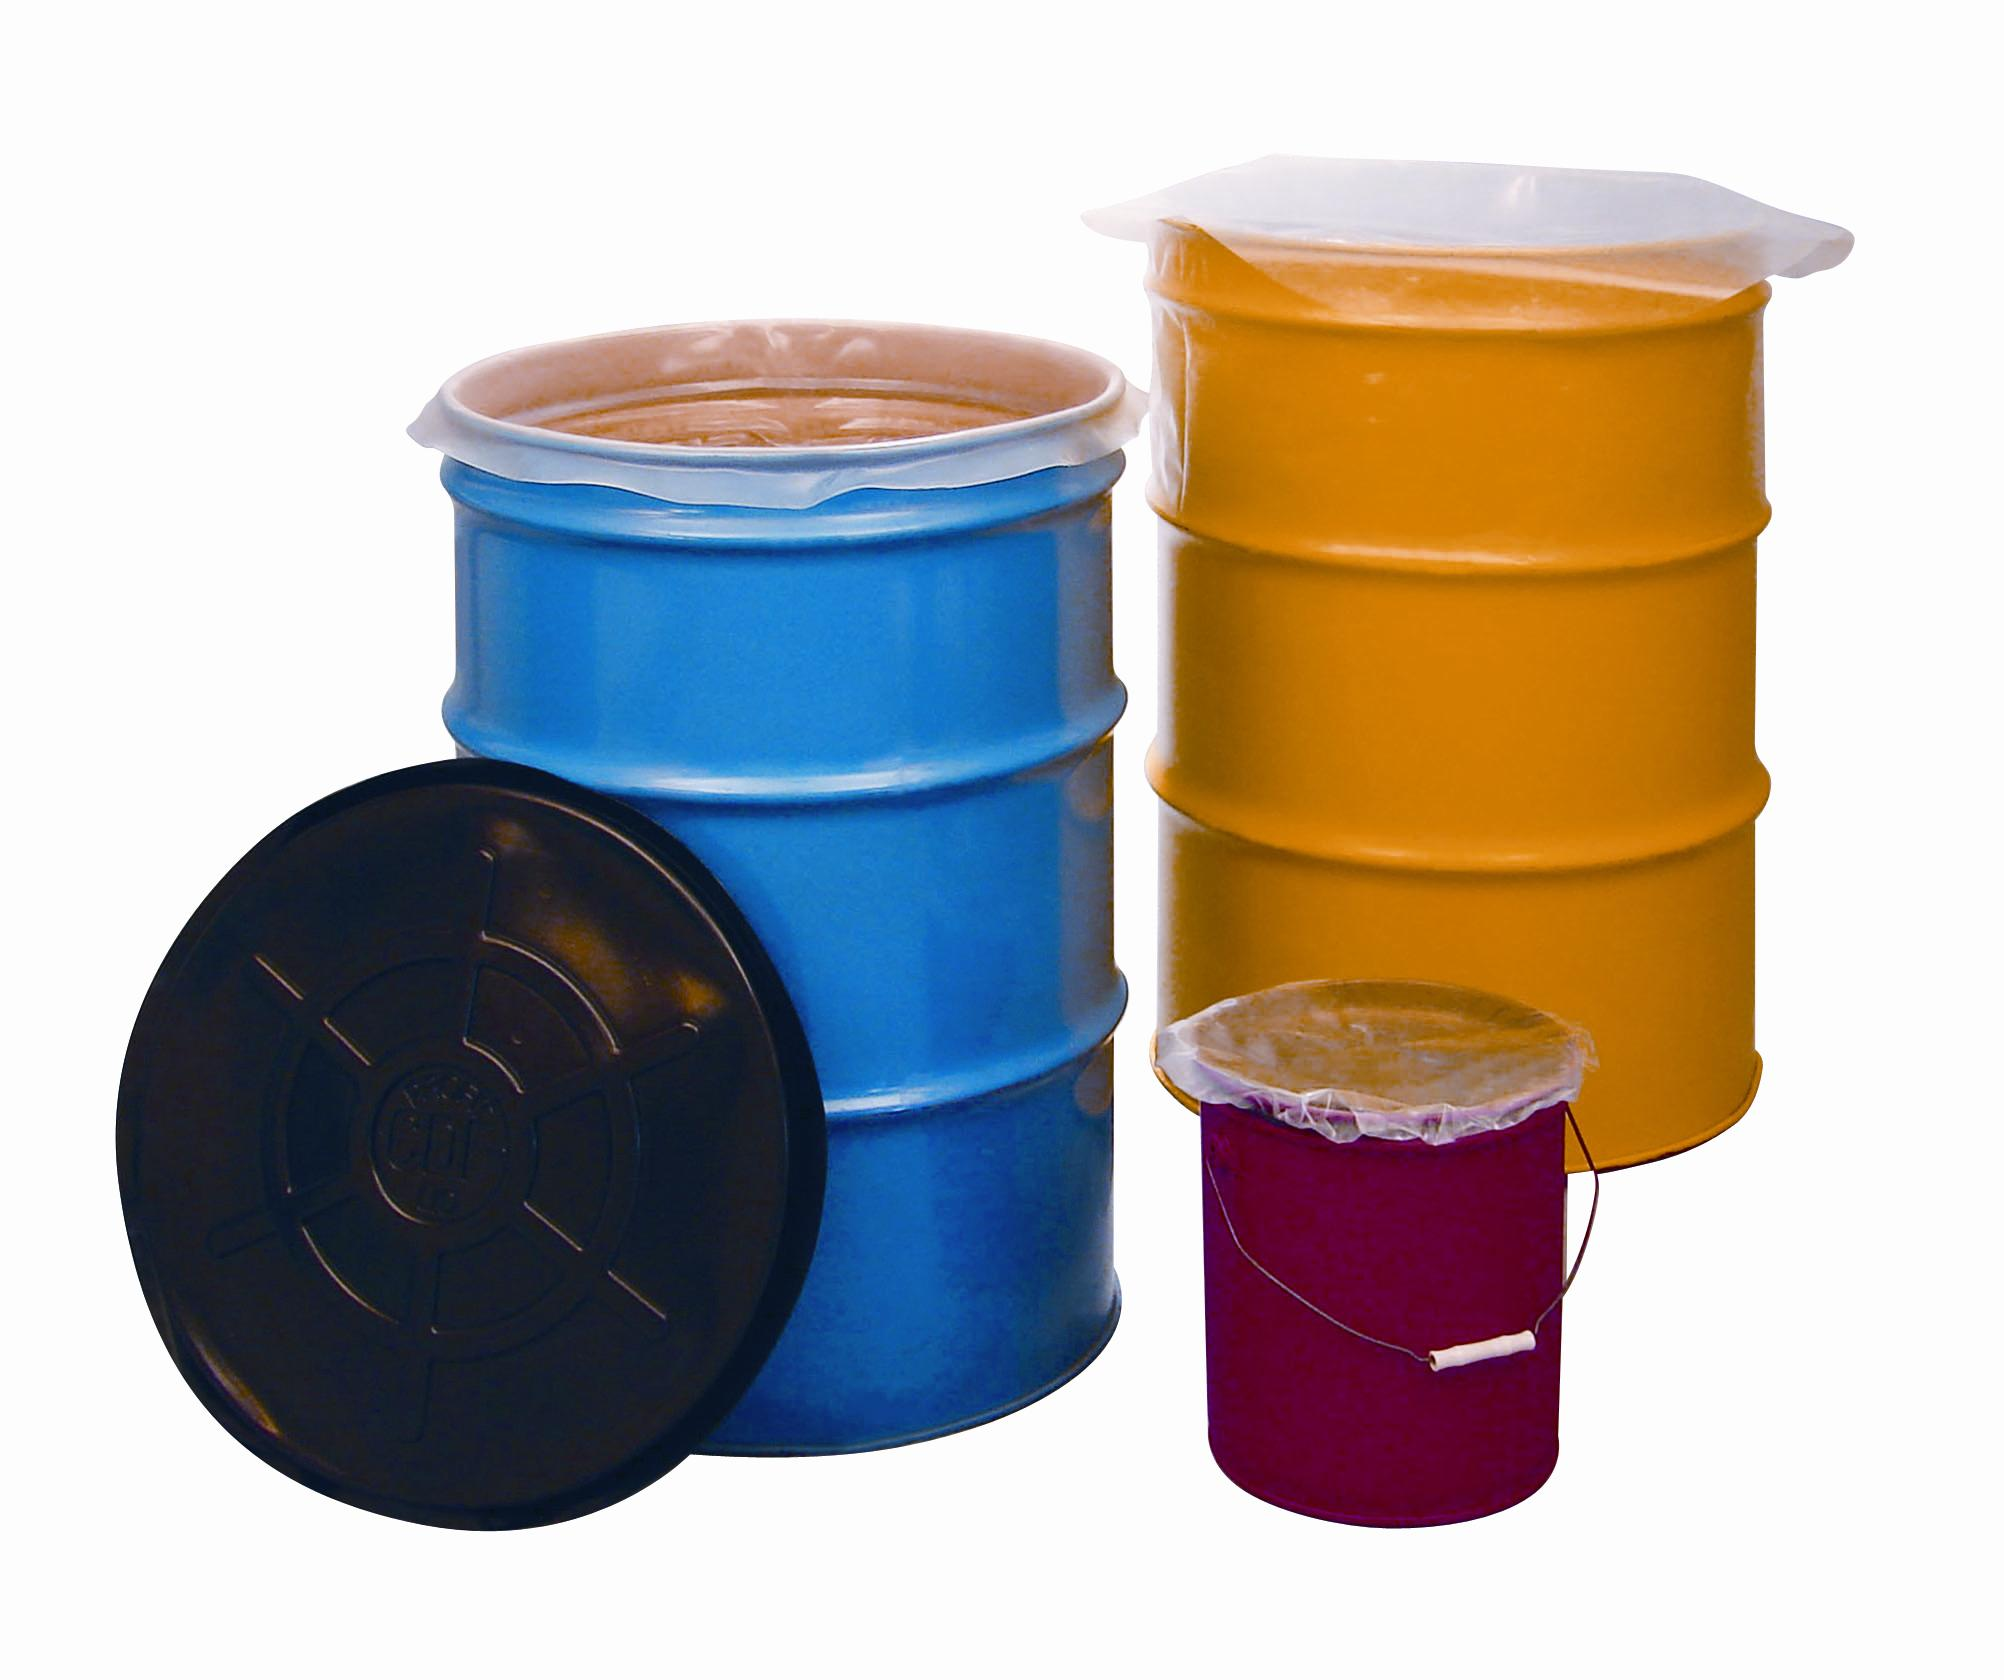 Drum And Pail Liners-Funnels, Accessories, And Drum/Pail Liners